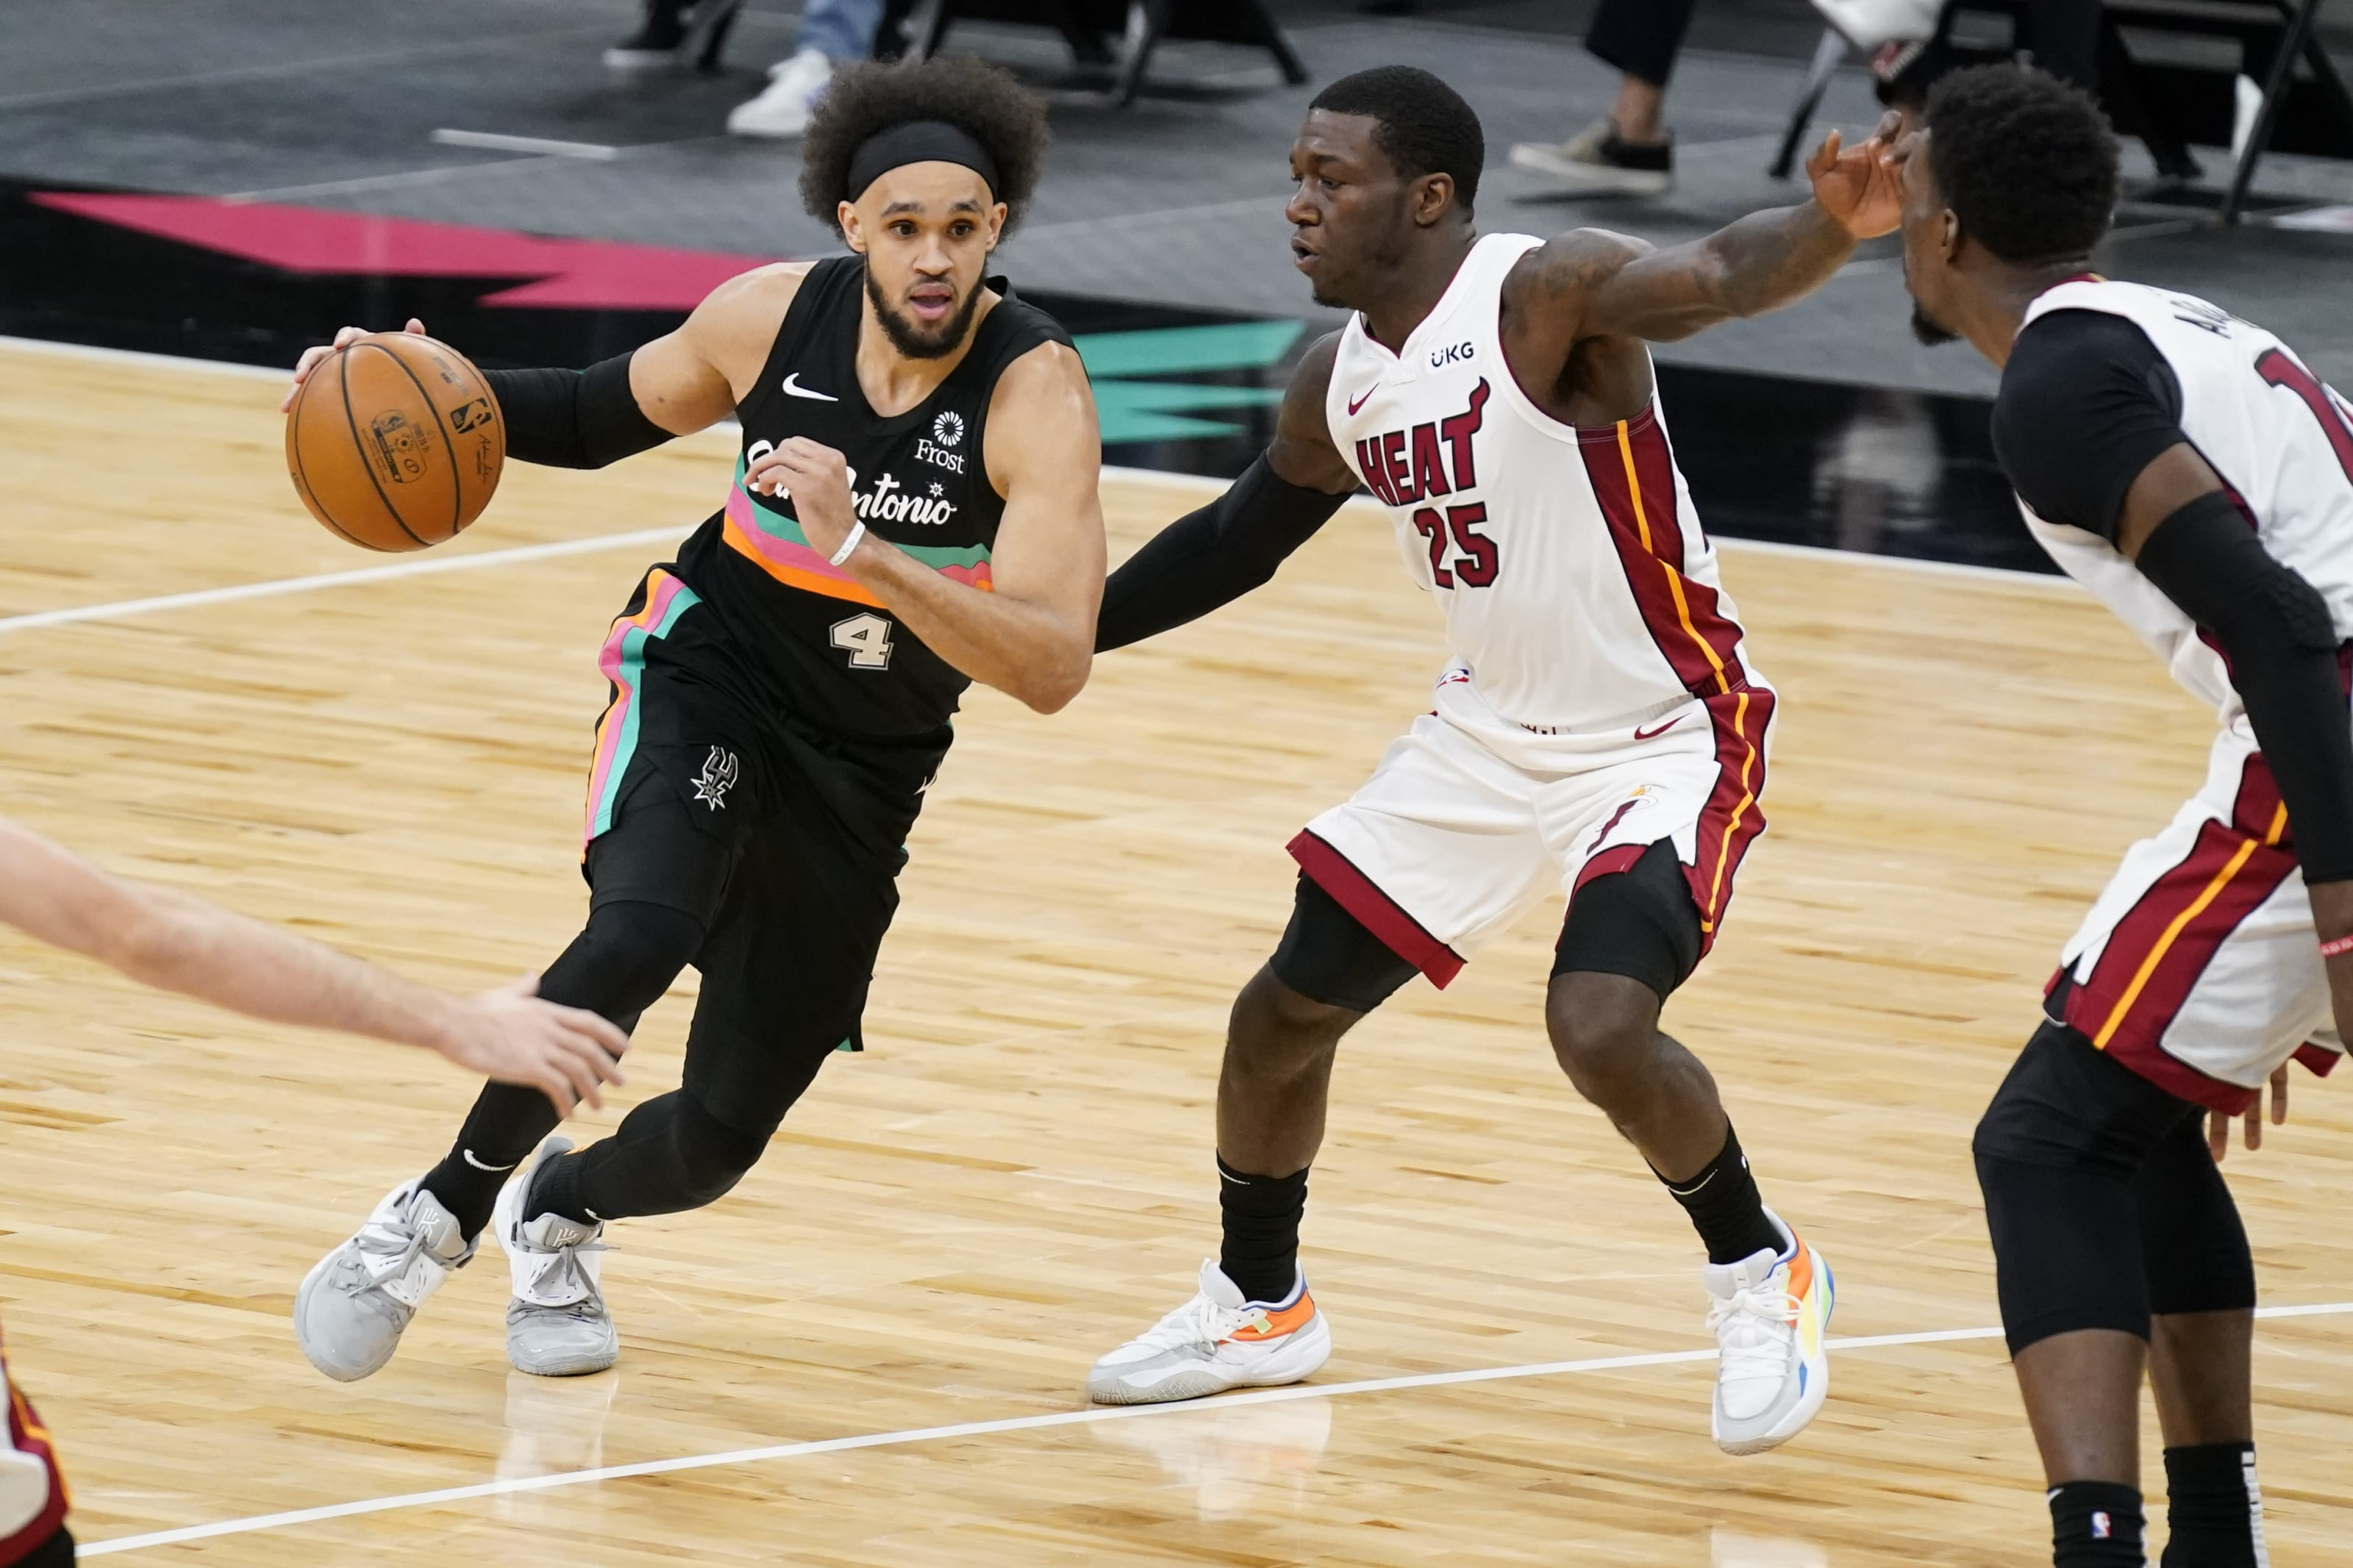 San Antonio Spurs: 3 Things that stood out in Spurs loss to Miami Heat